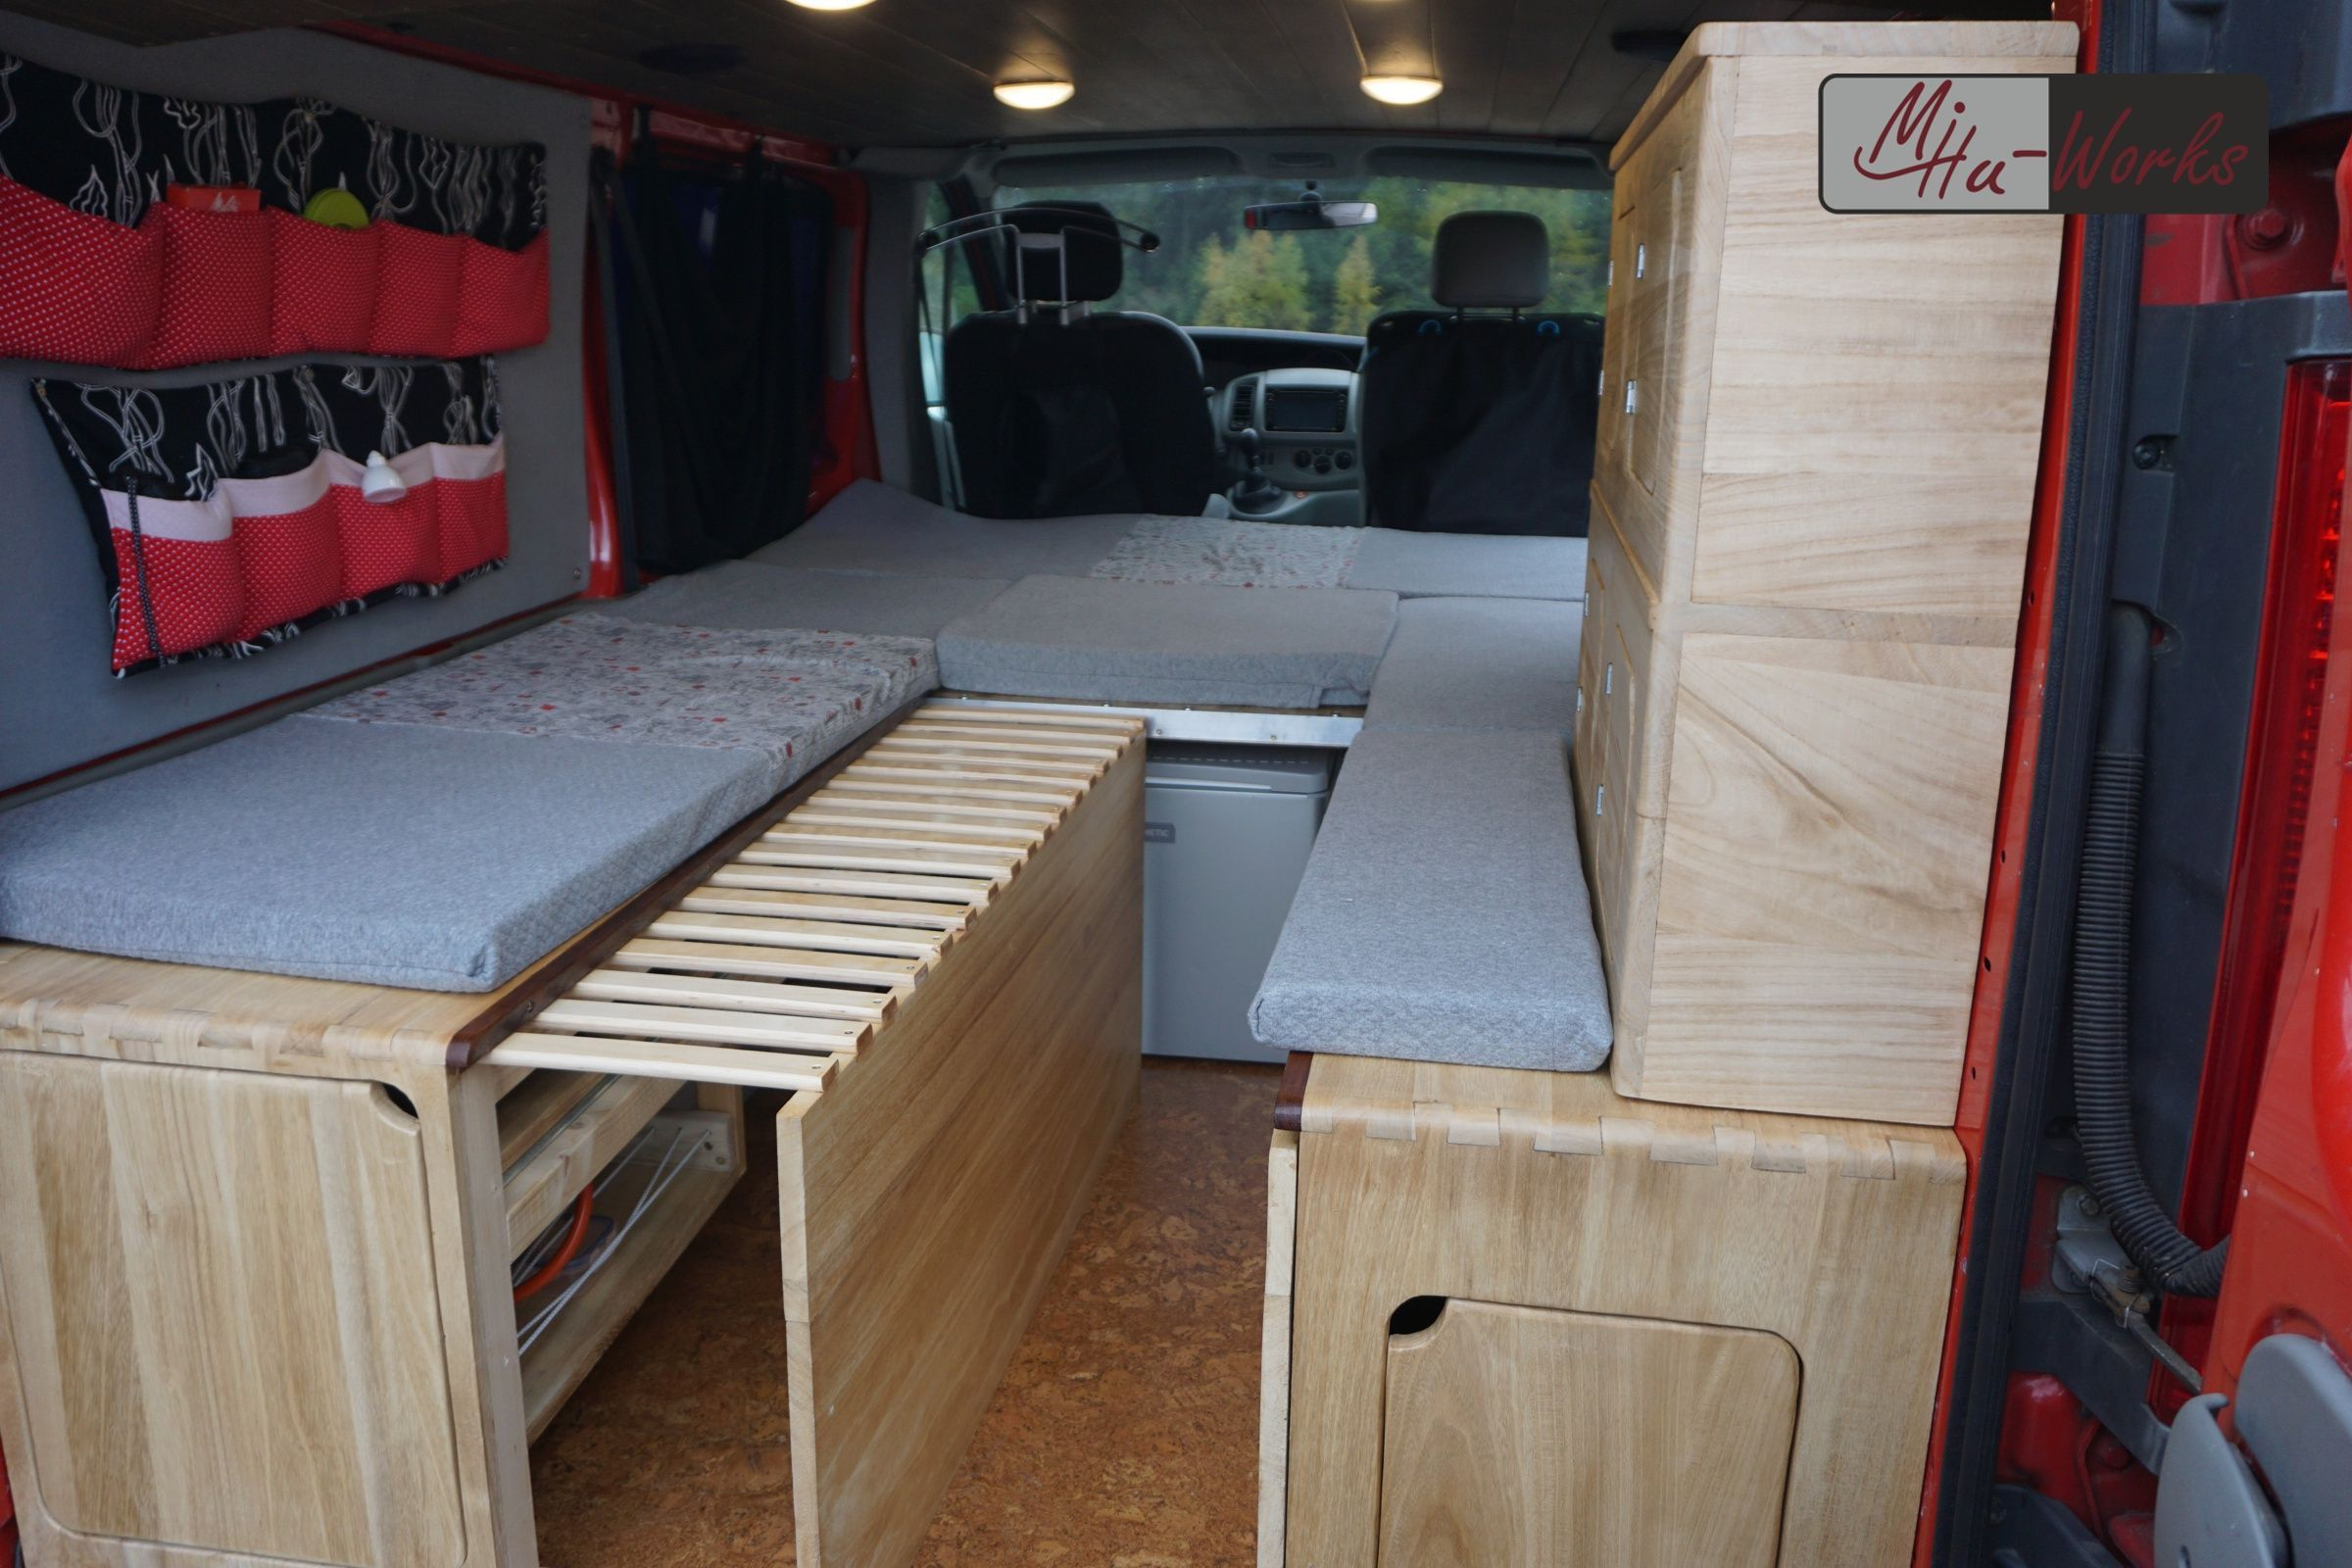 Photo of DIY Camper Ausbau – Opel Vivaro – MiHu-Works #Ausbau #camper #DIY #MiHuWorks…